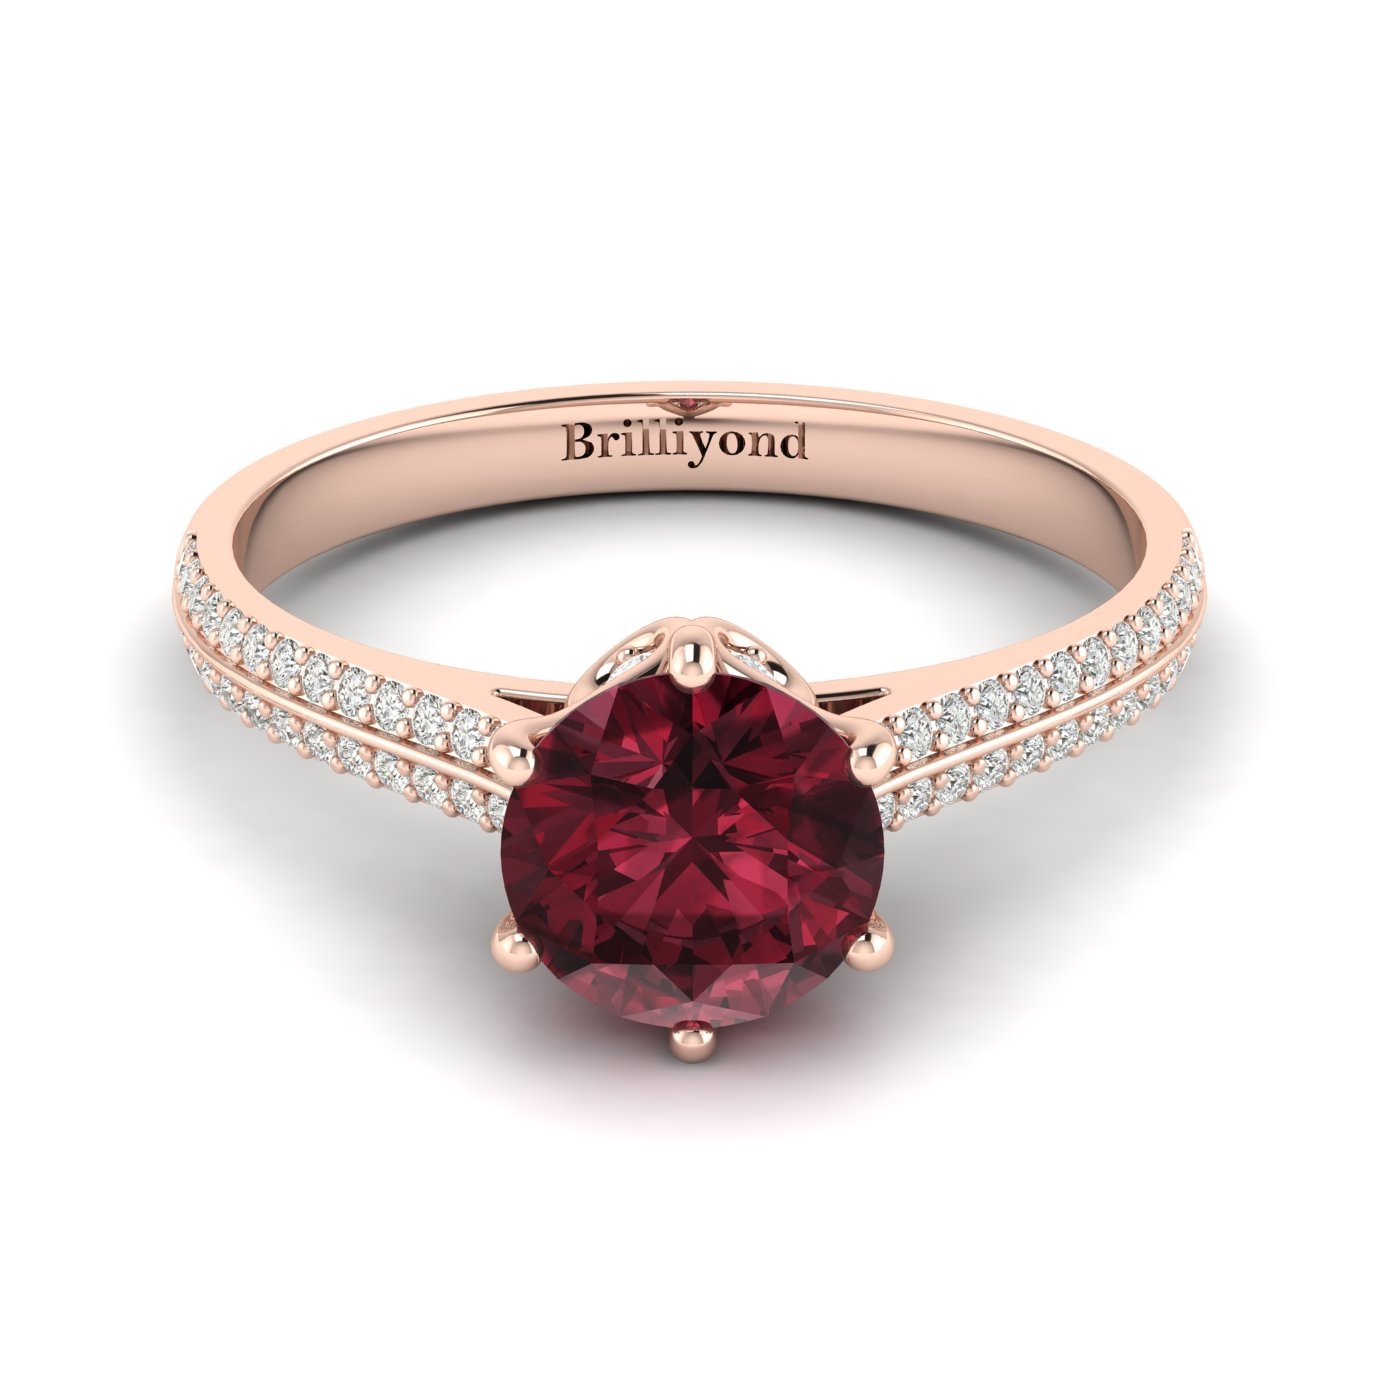 18k Rose Gold Band with CZ Accents and Garnet Centre Stone